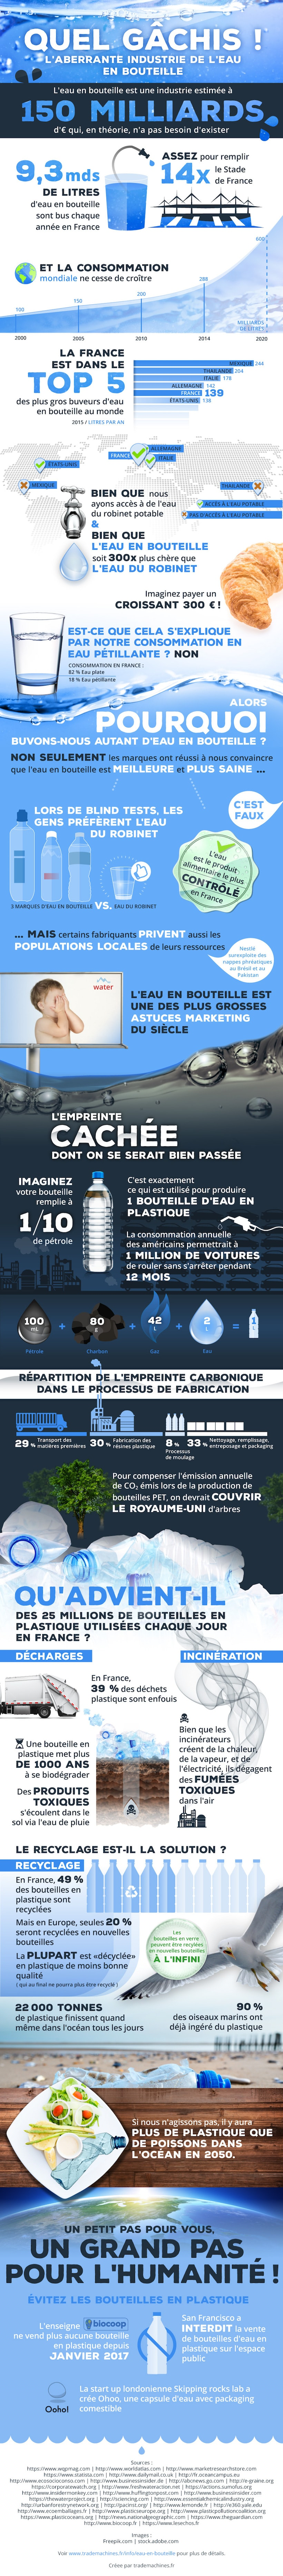 Infographie eau pollution